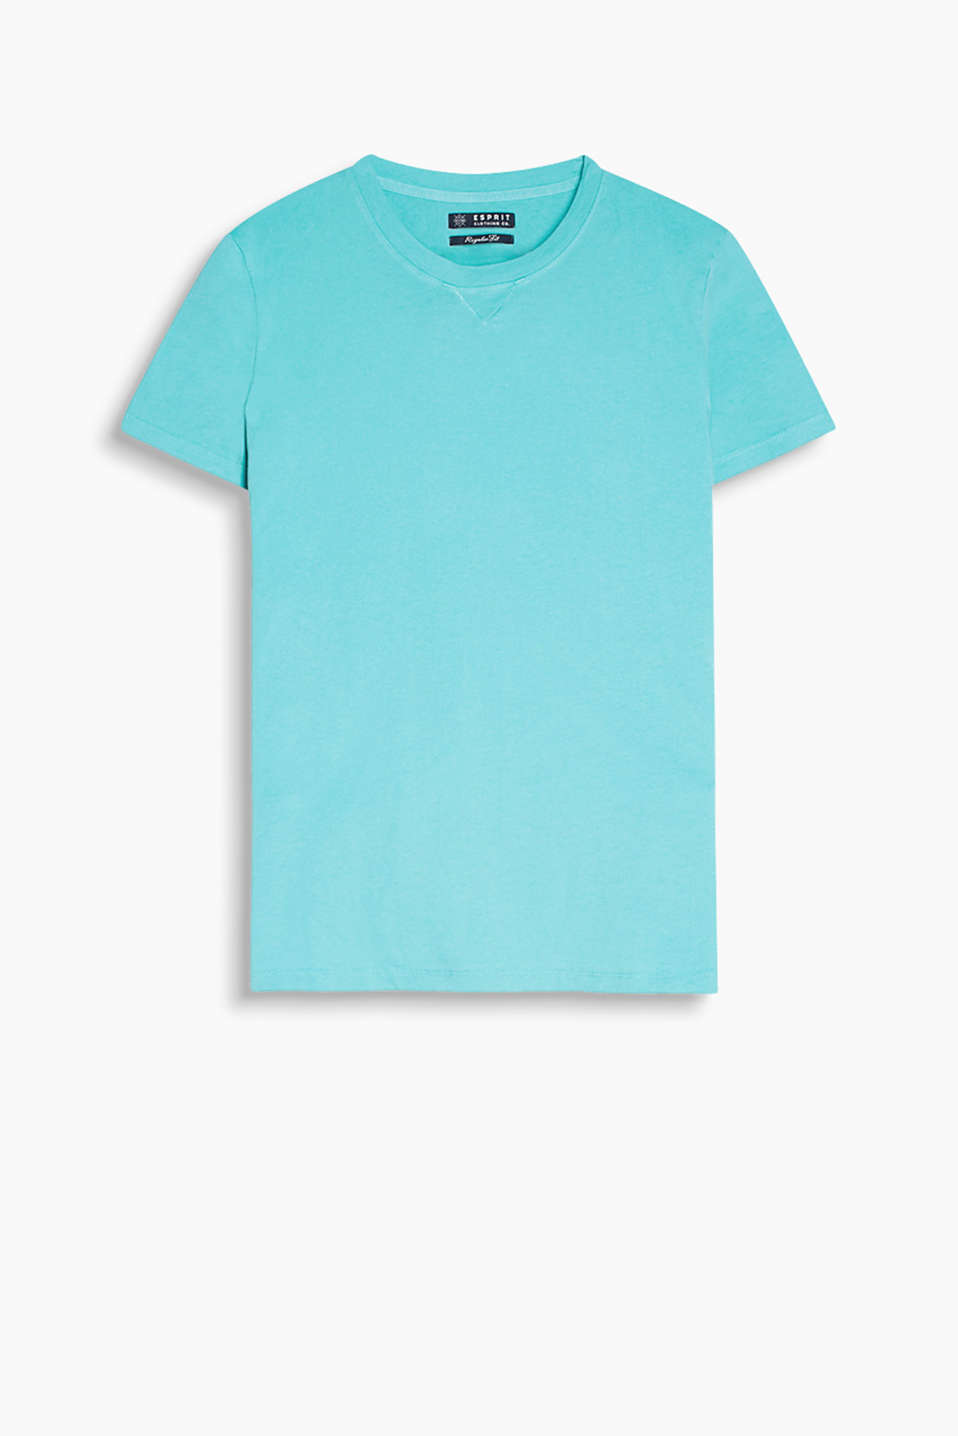 100% cotton T-shirt in a basic design